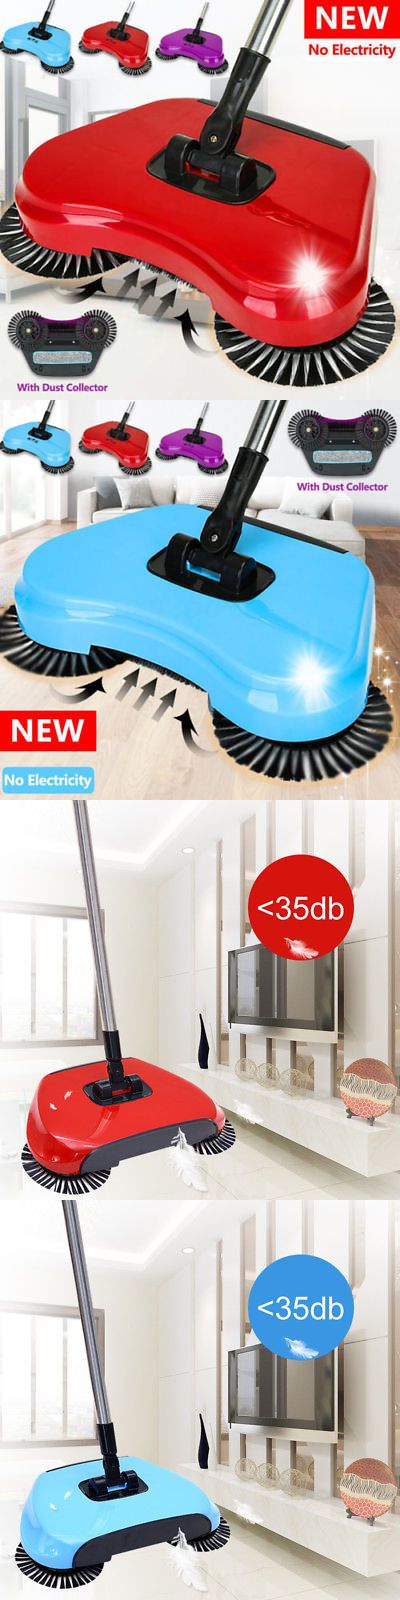 Carpet And Floor Sweepers 79657 Spin Hand Push Sweeper Broom Household Floor Dust Cleaning Mop No Cleaning Mops Floor Cleaning Mop Household Cleaning Supplies